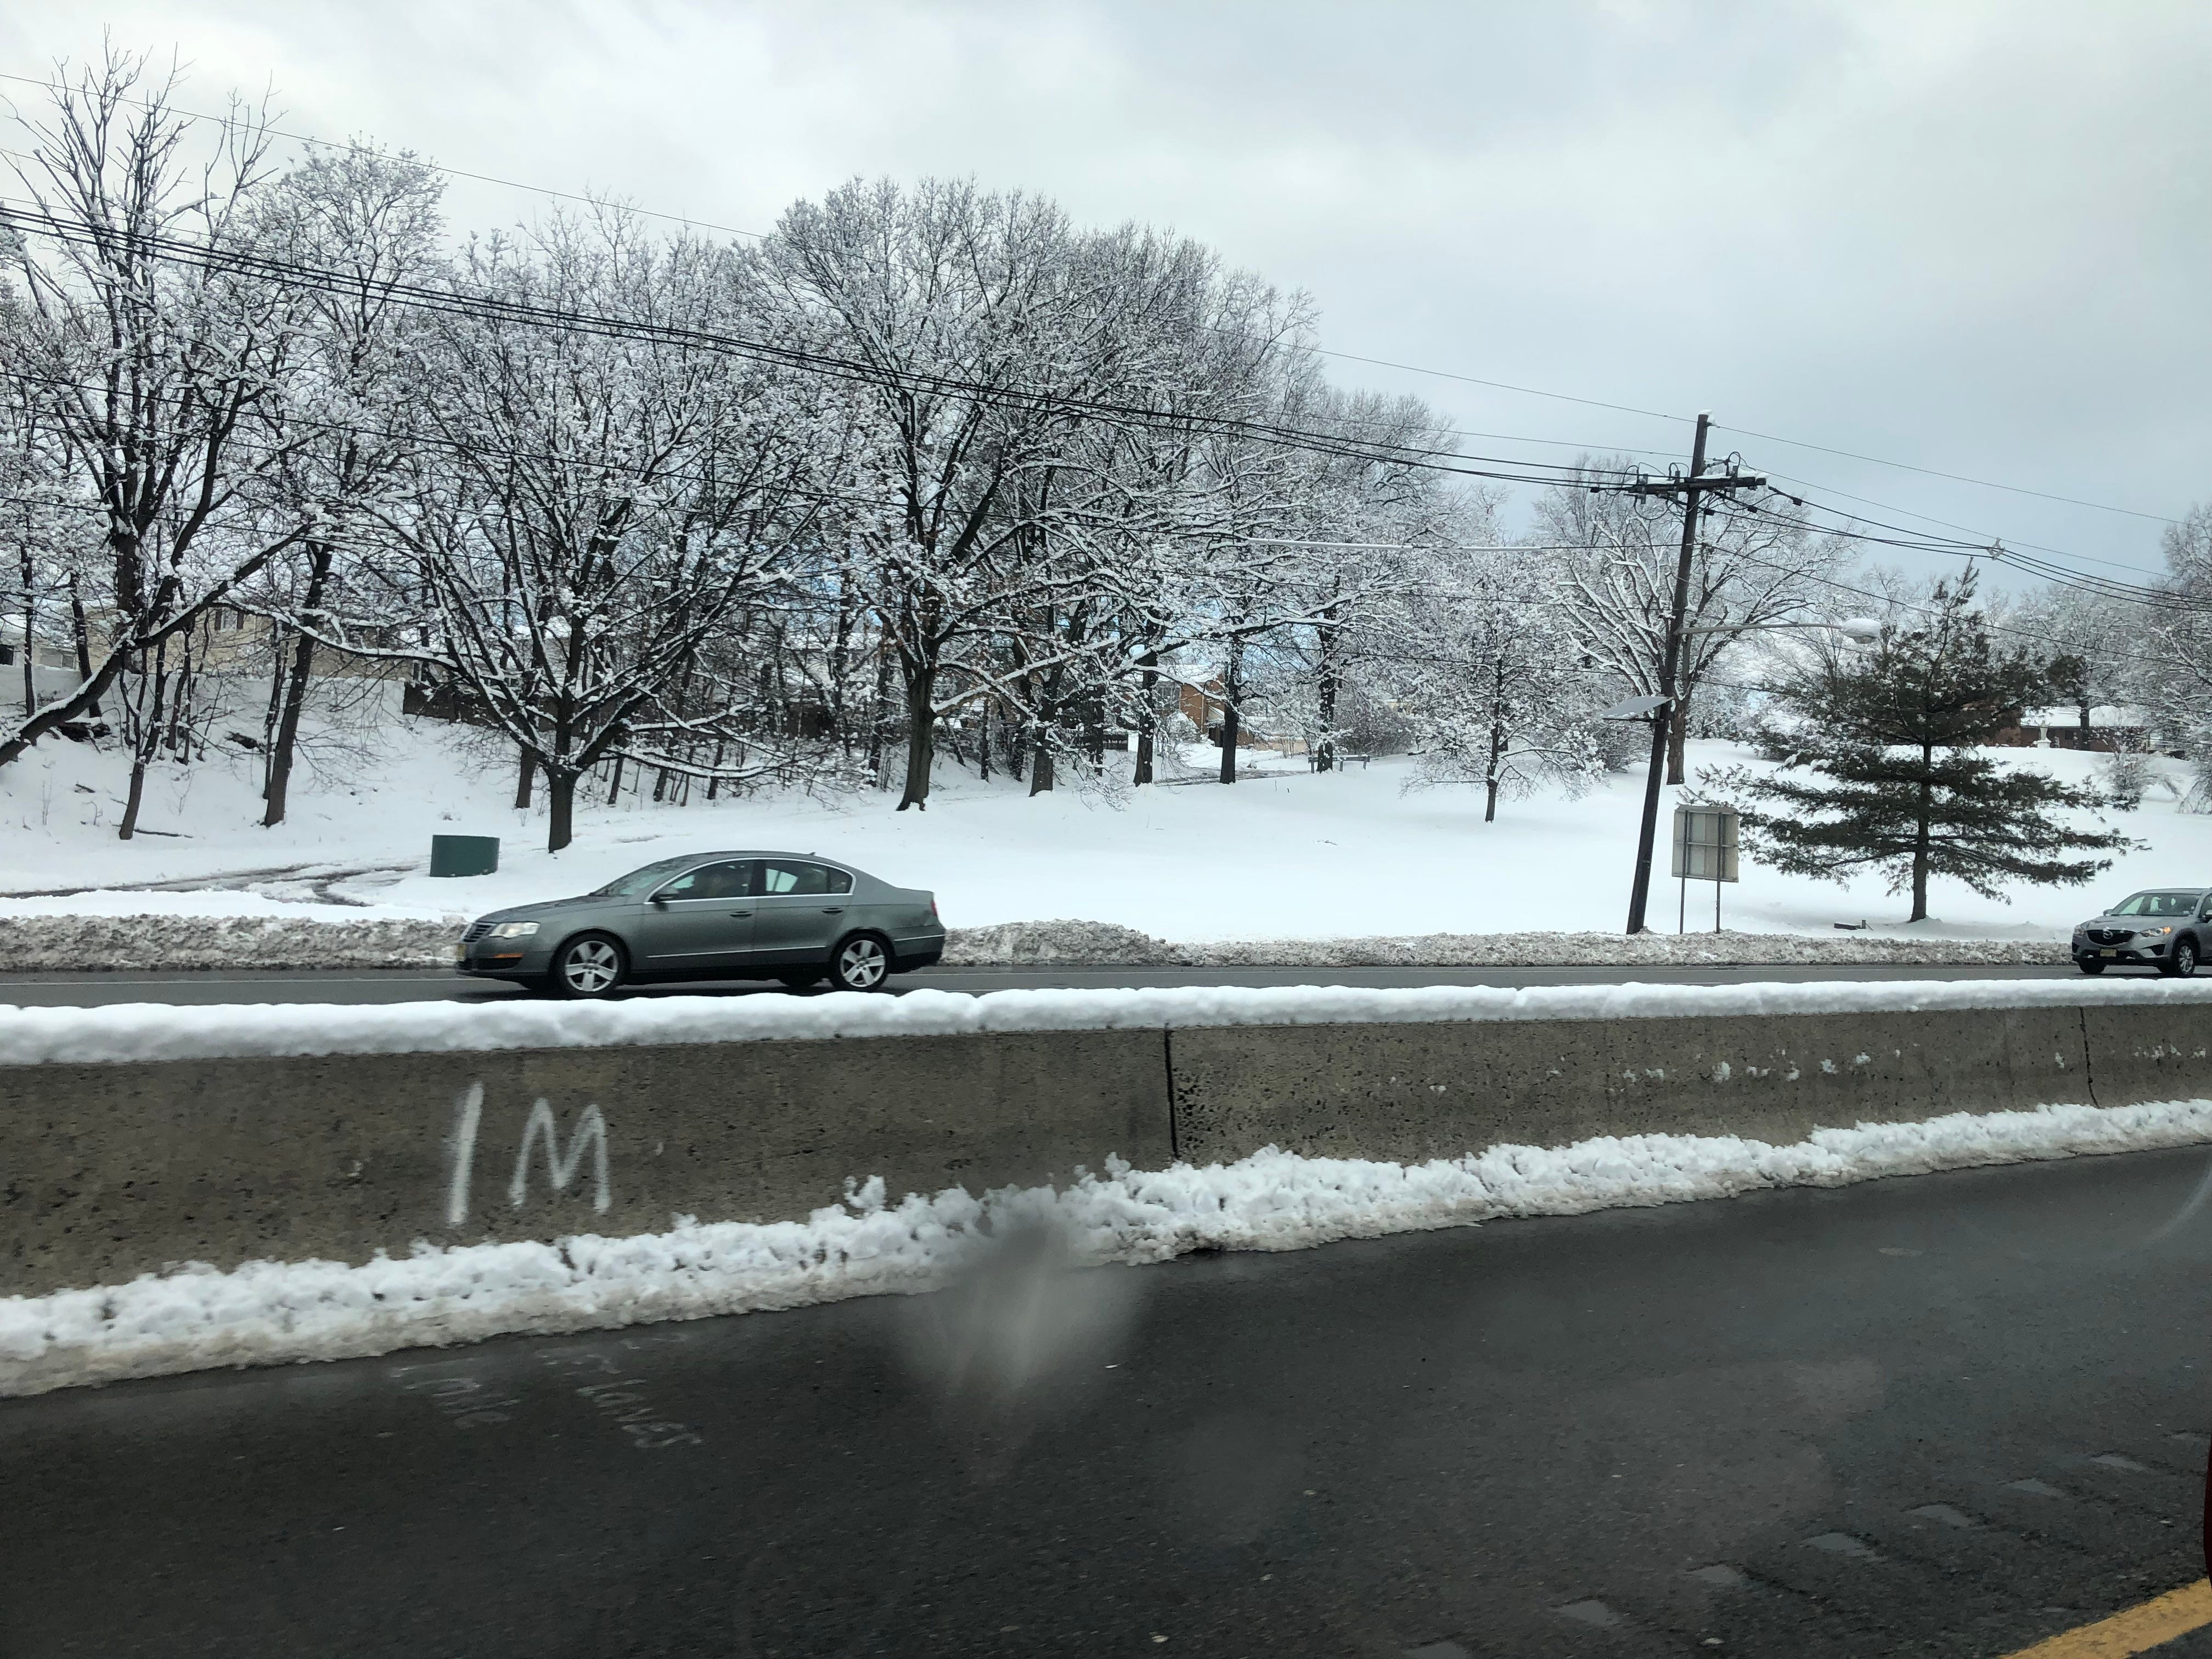 The roads were clear on Route 3 by 9 a.m. on Monday.